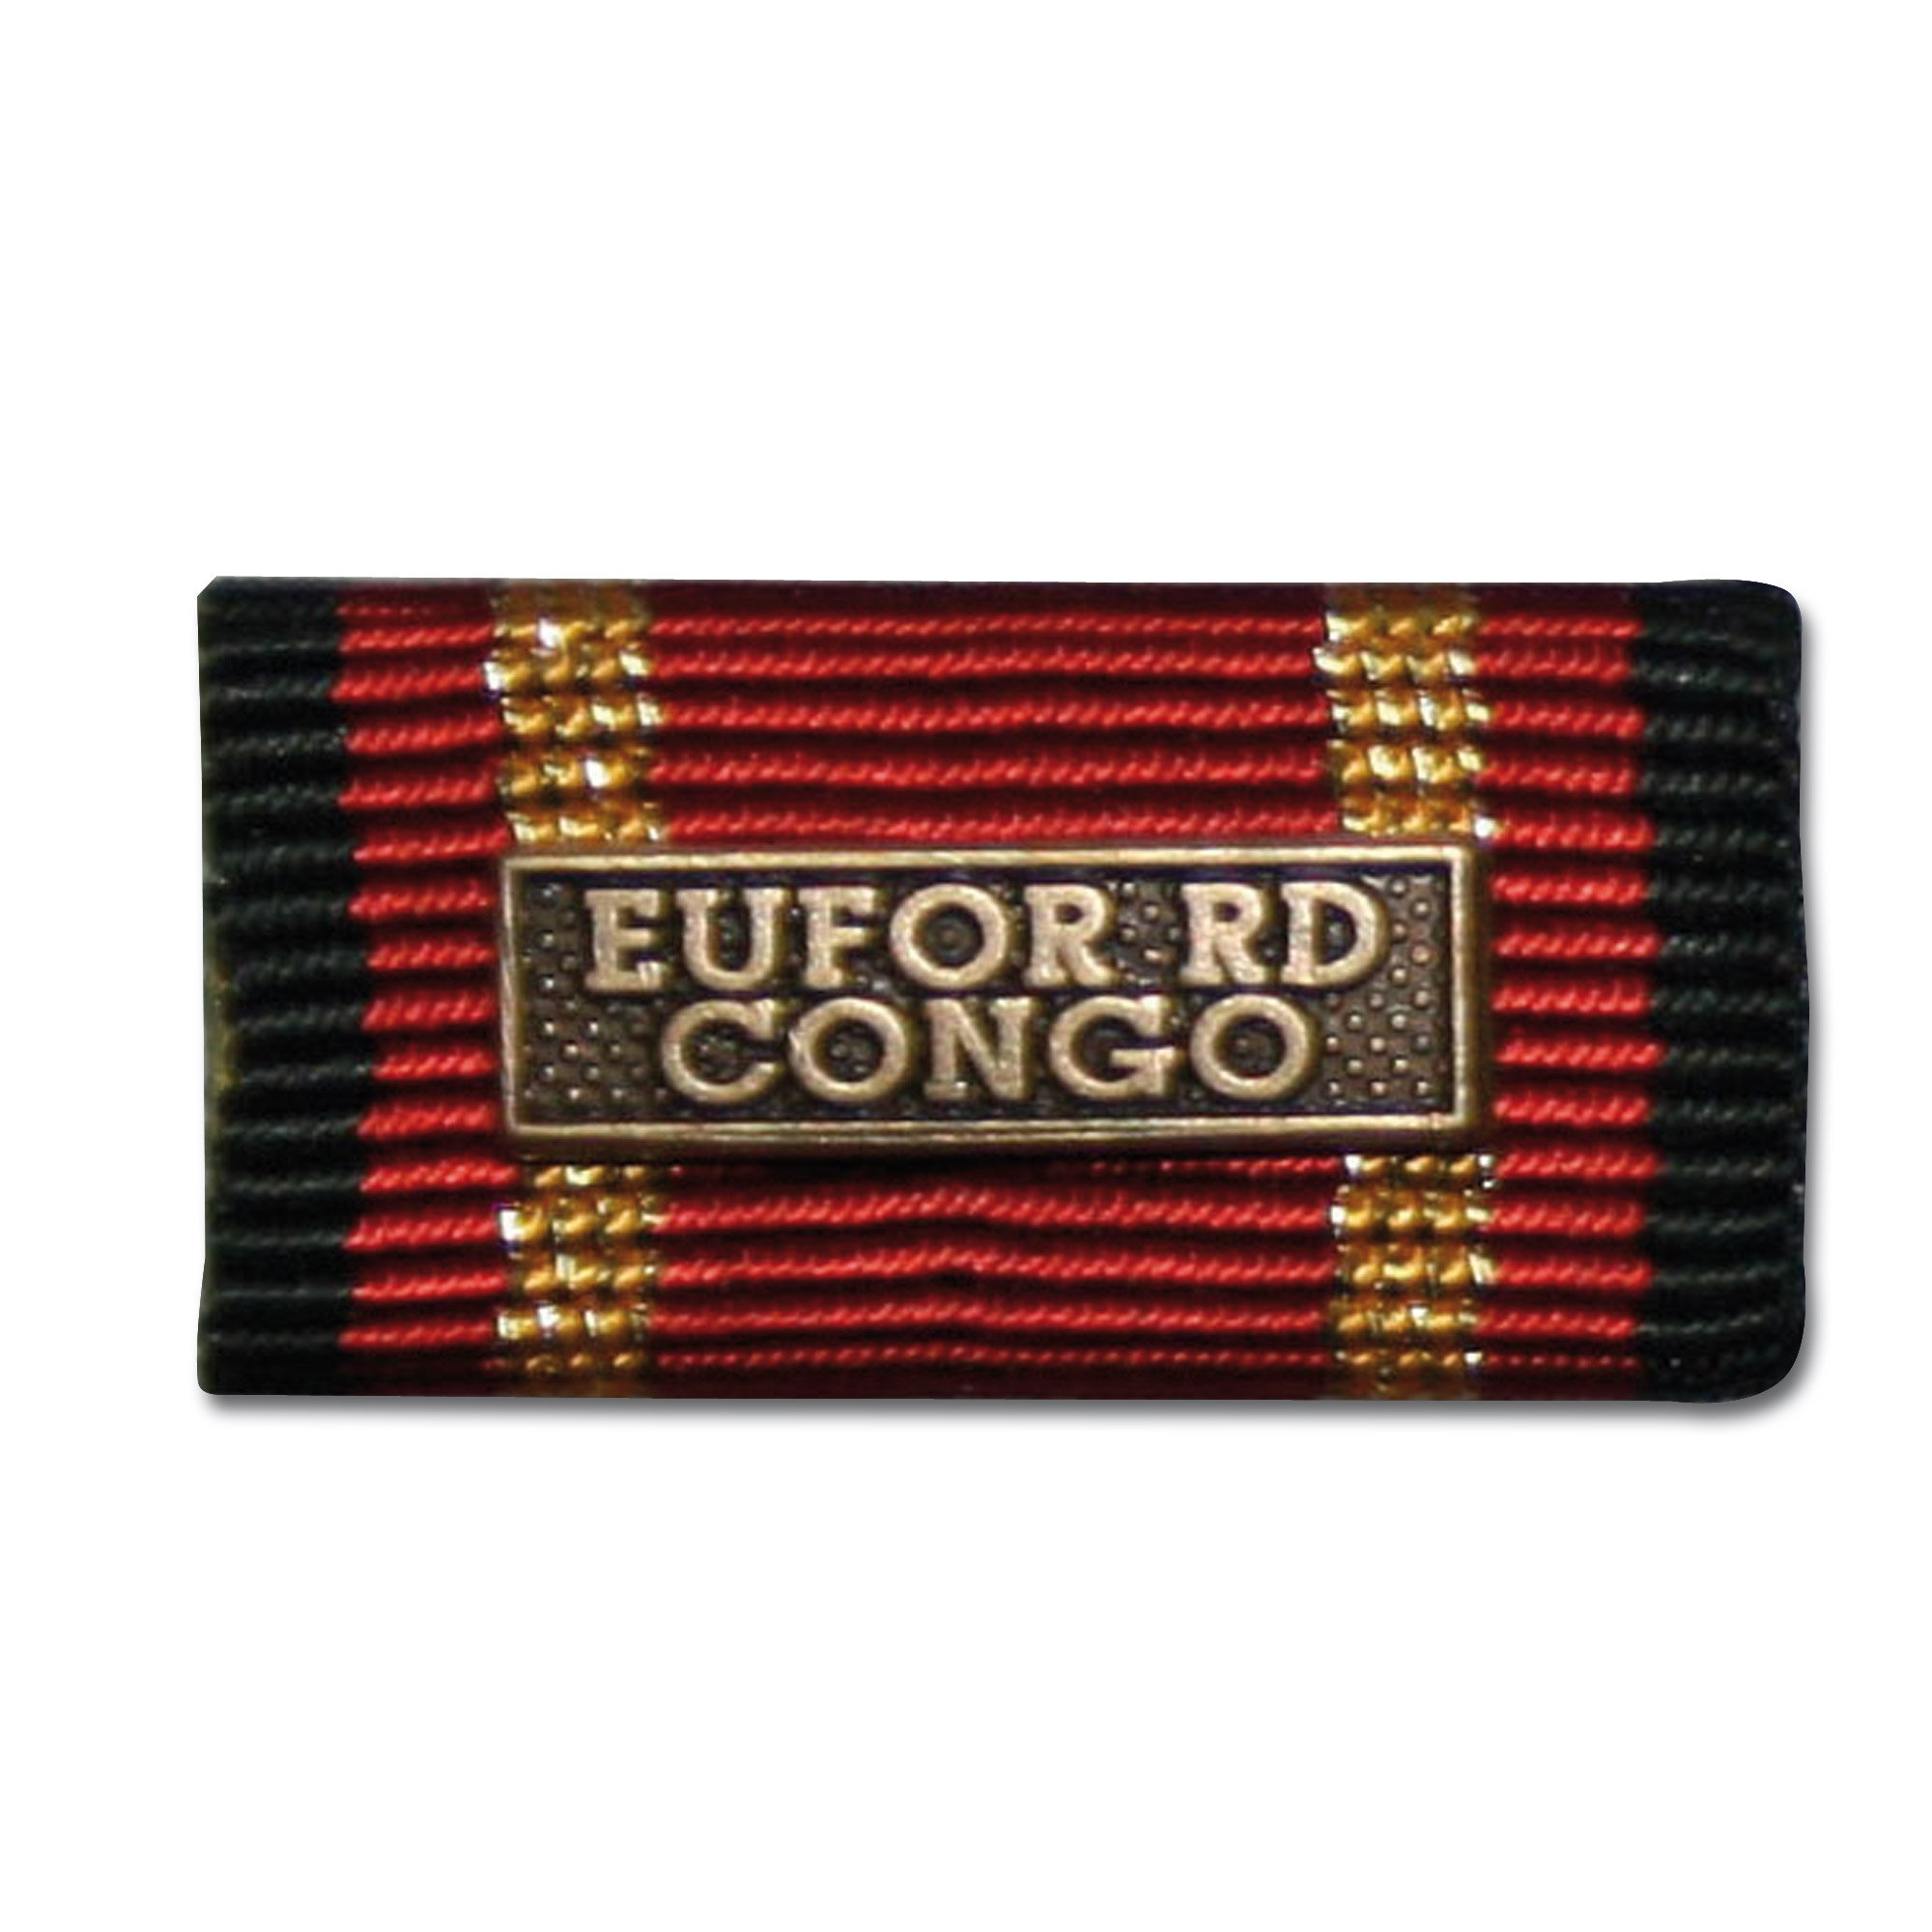 Service Ribbon Deployment Operation EUFOR RD CONGO